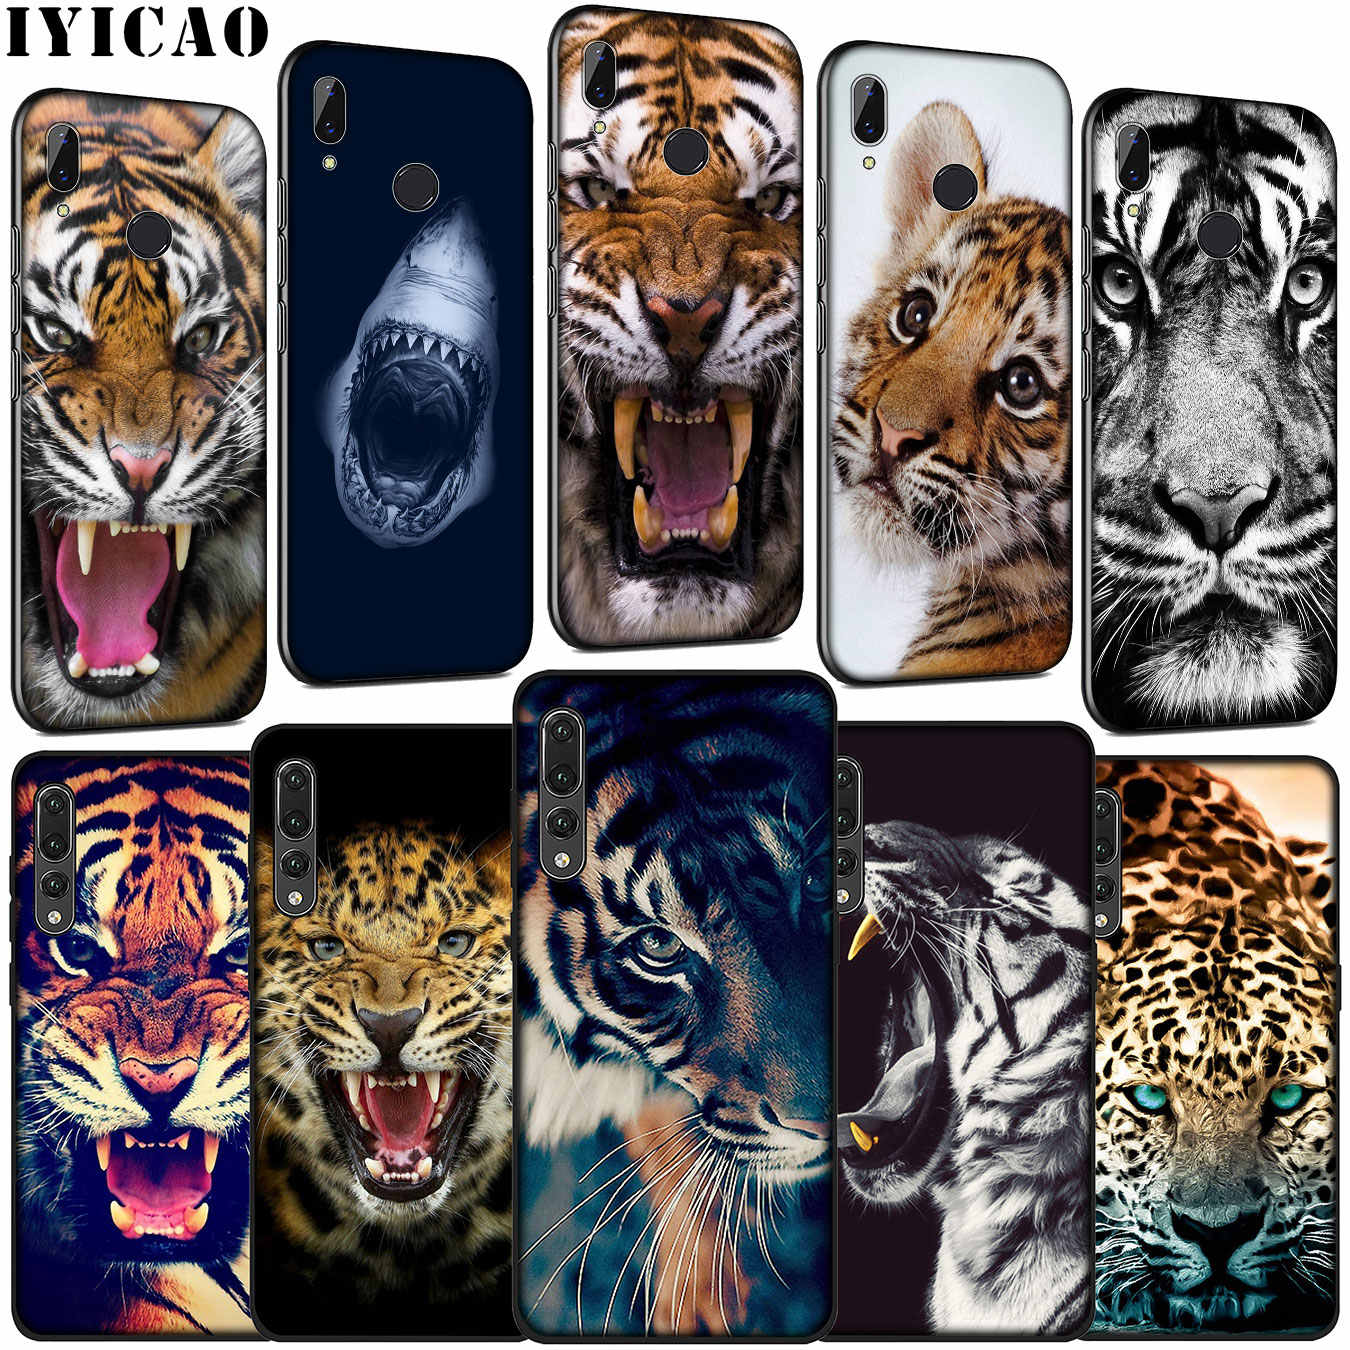 IYICAO tiger leopard Shark Bleiben hungrig Weiche Silikon Fall für Huawei P30 P20 Pro P10 P9 Lite Mini 2017 2016 P Smart Z Plus 2019